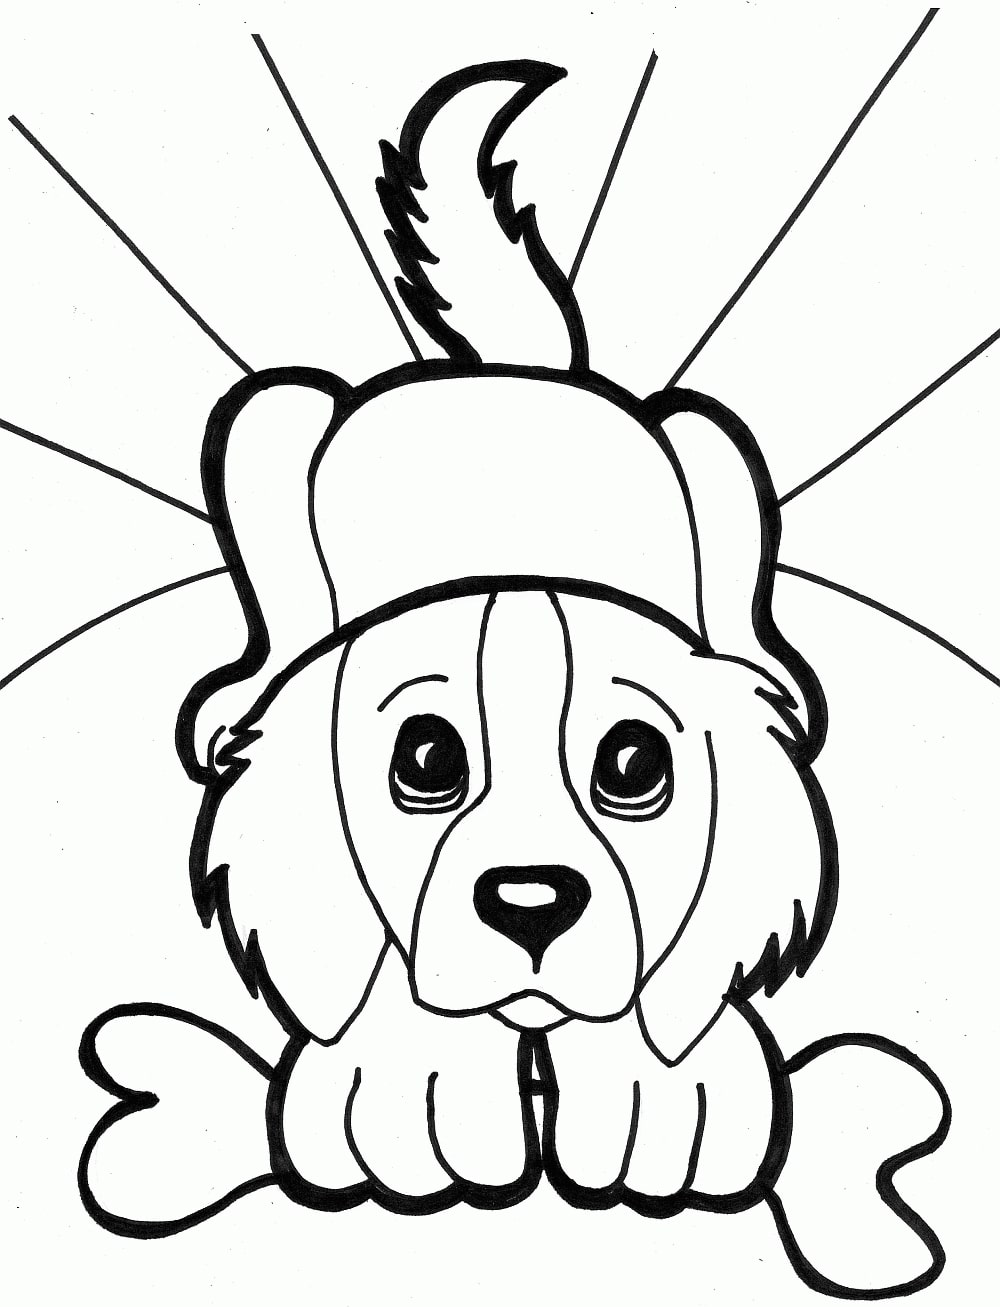 Dog Coloring Pages for Kids. Print Them Online for Free!